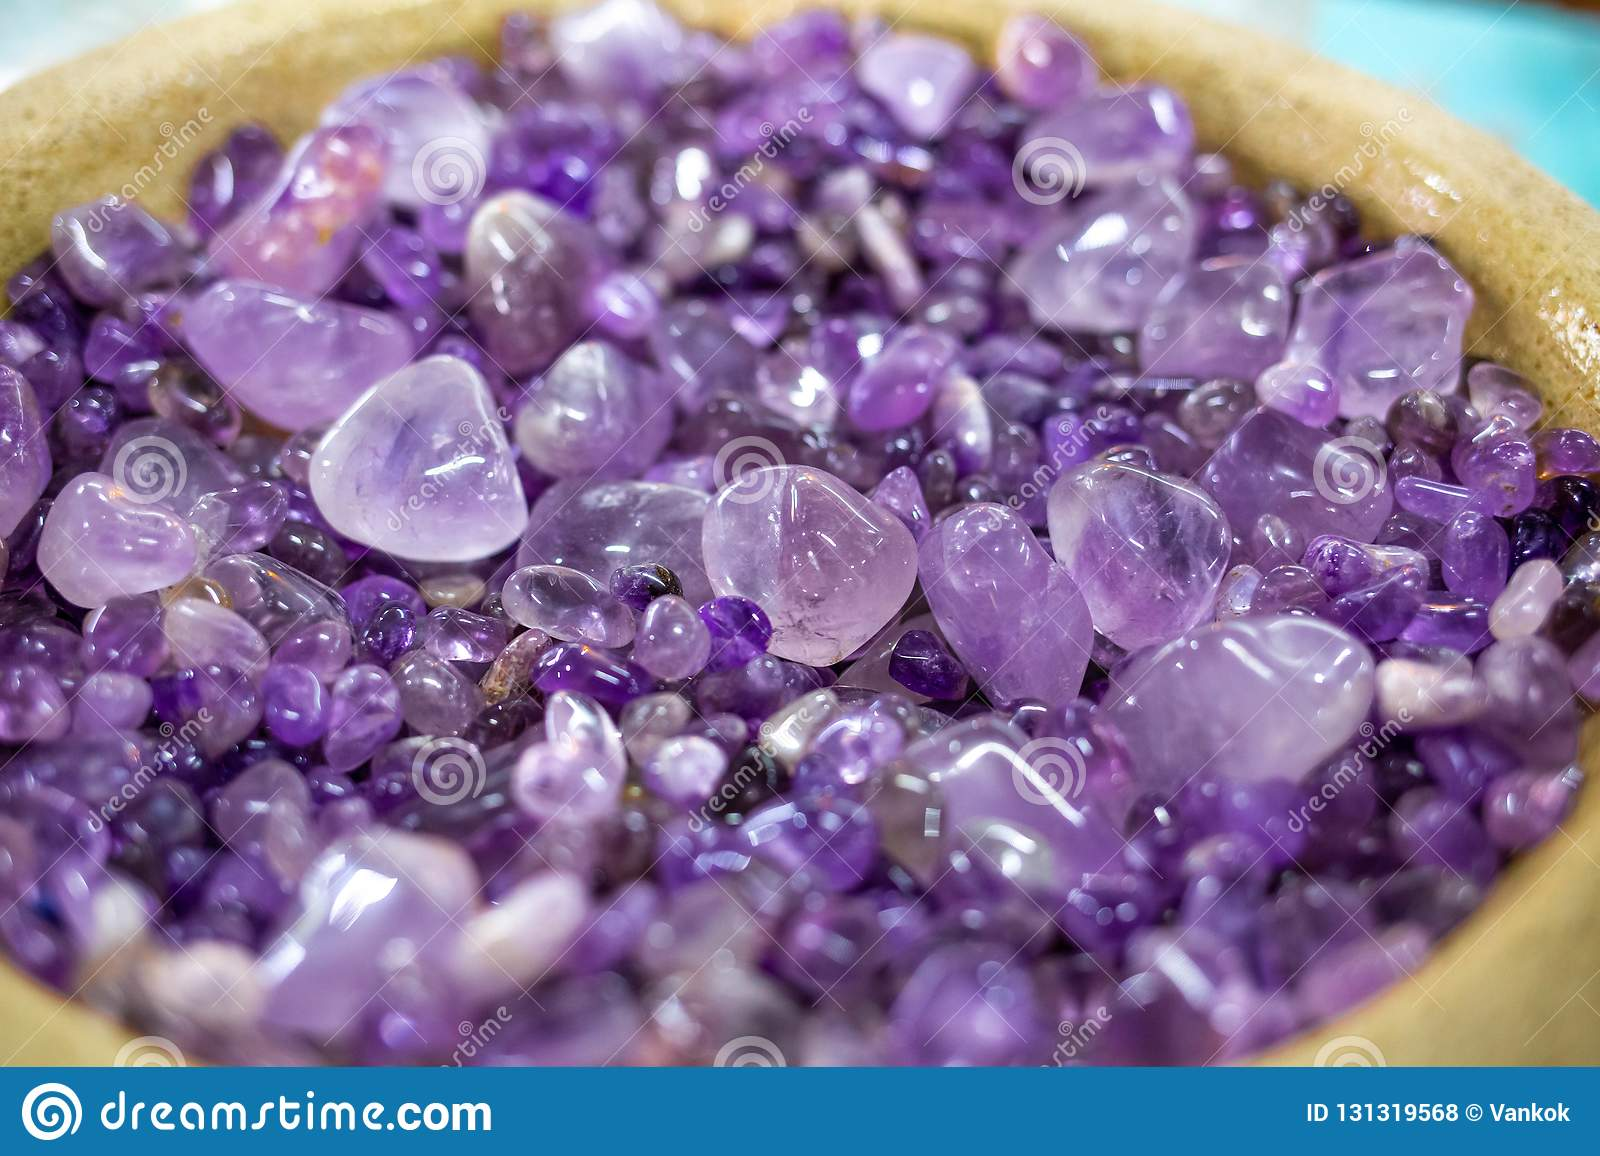 Collection of beautiful amethyst stones close up